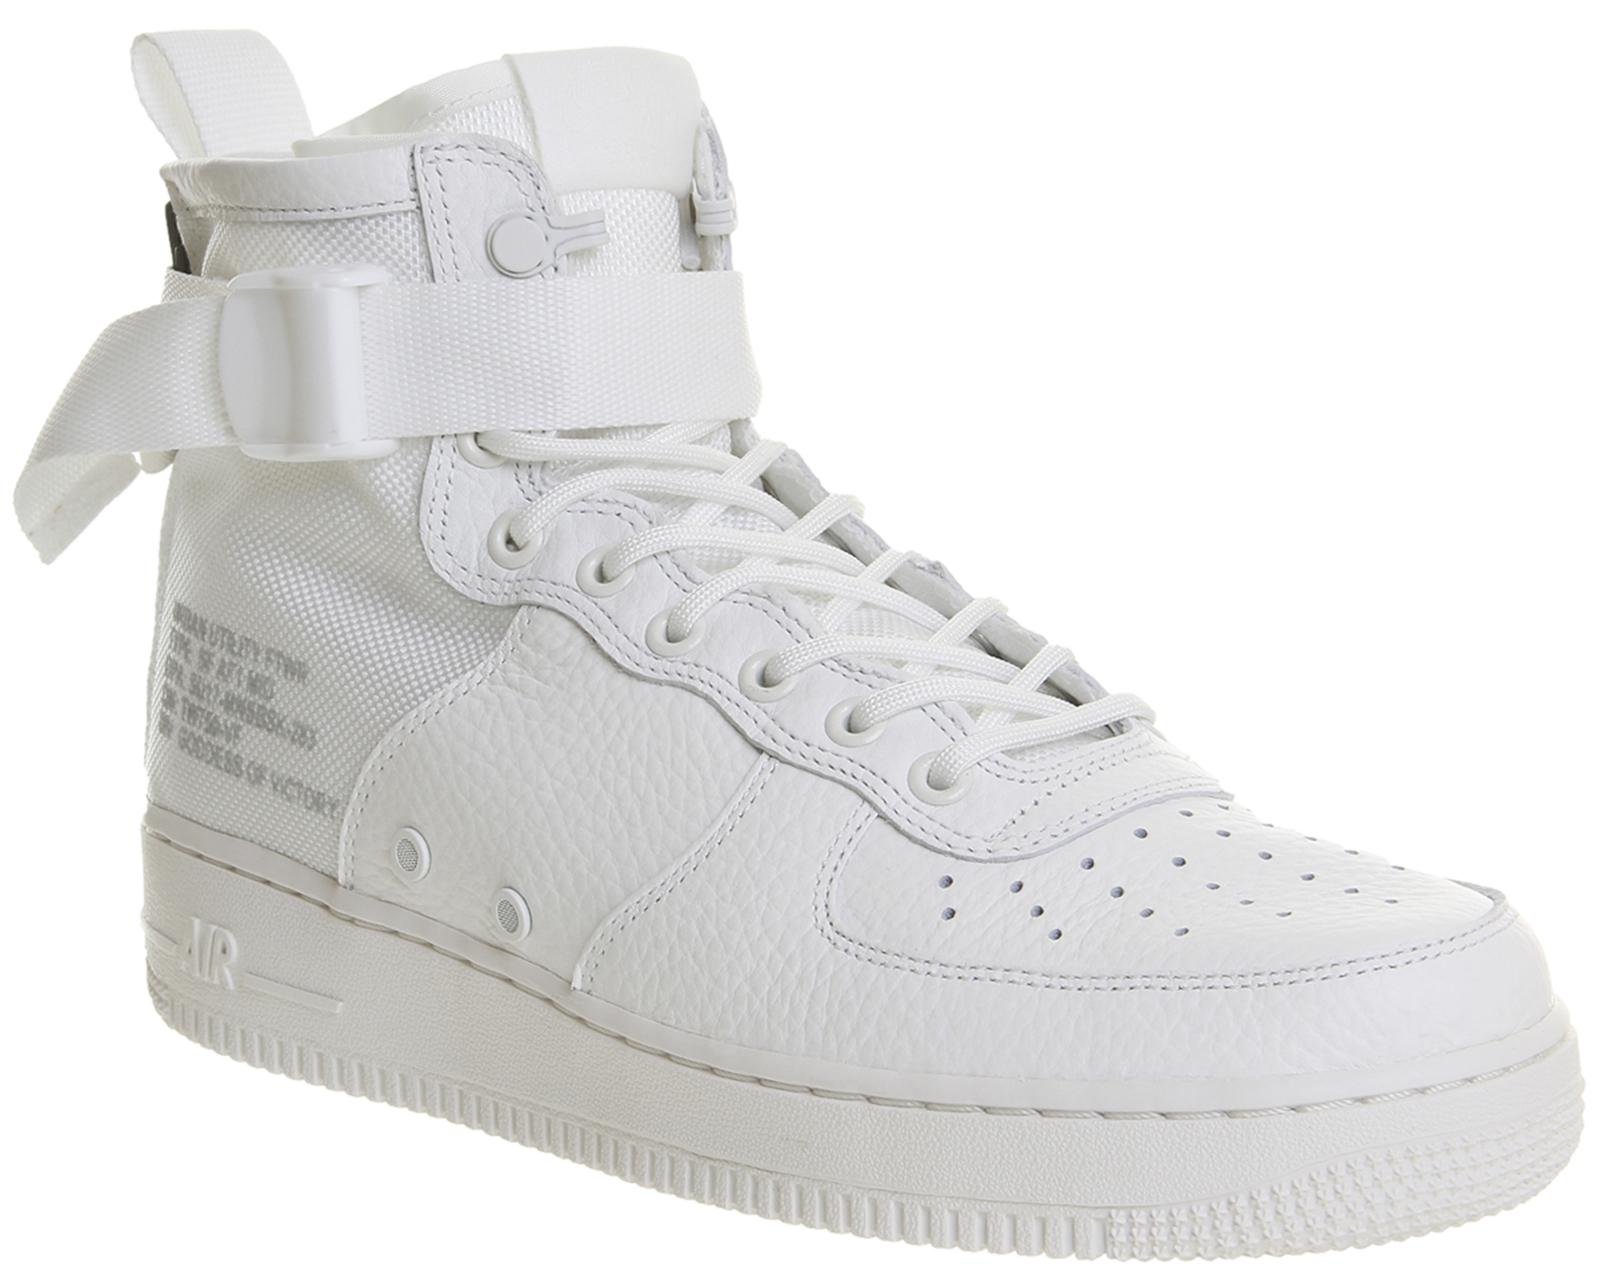 new styles 0196f 1d0bc Lyst - Nike Sf Af1 Mid 17 in White for Men